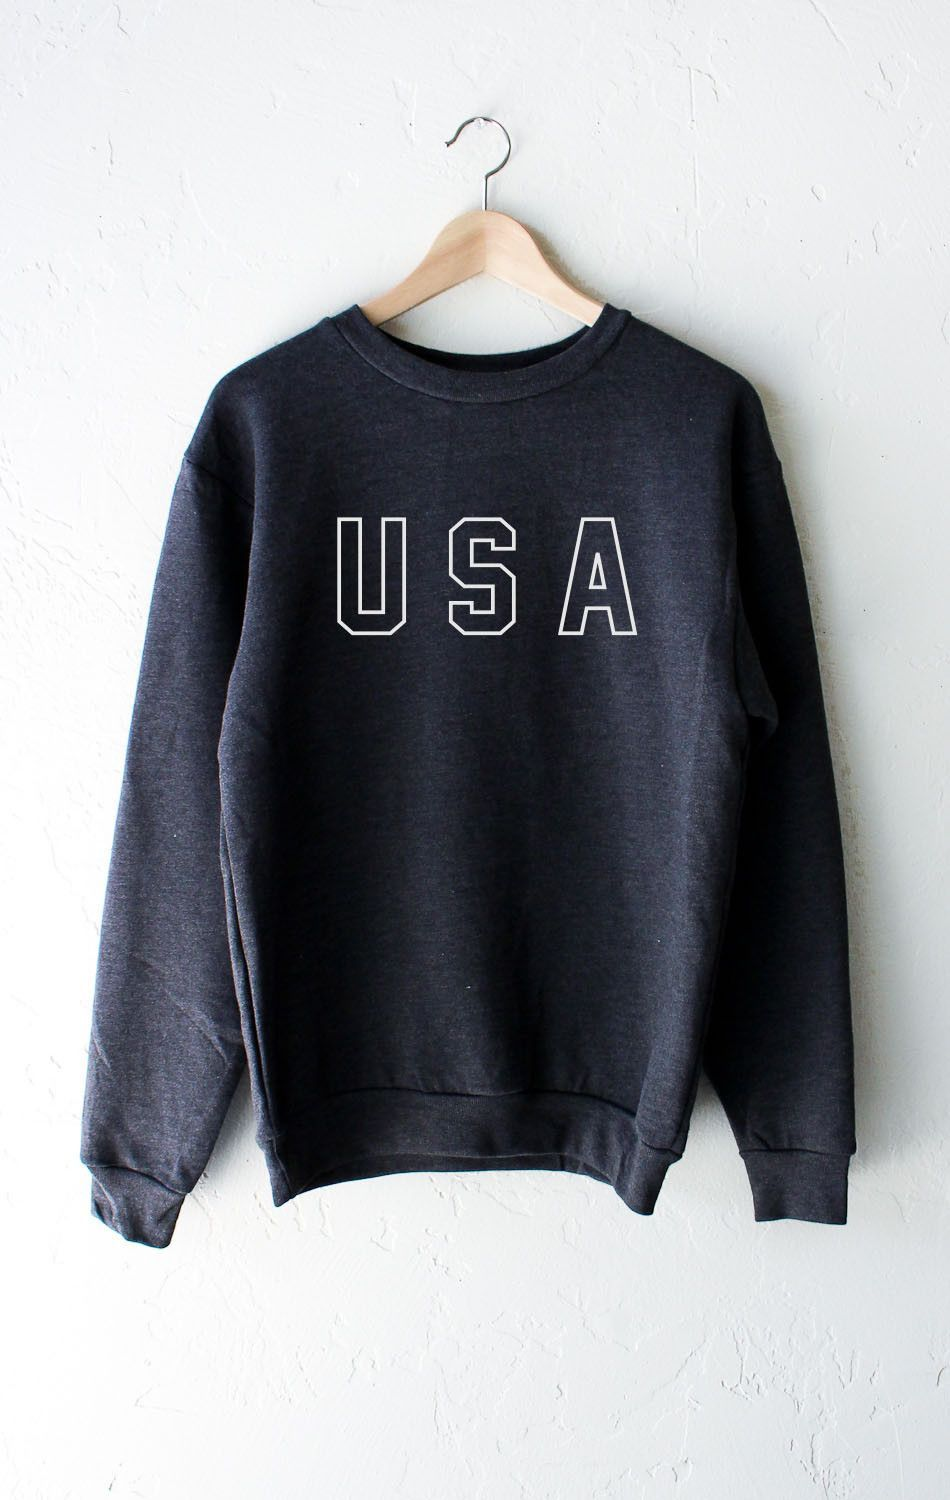 ea56b8a9f92 Description Details  Get cozy in our soft oversized dark heather grey  sweater with print  USA . Unisex